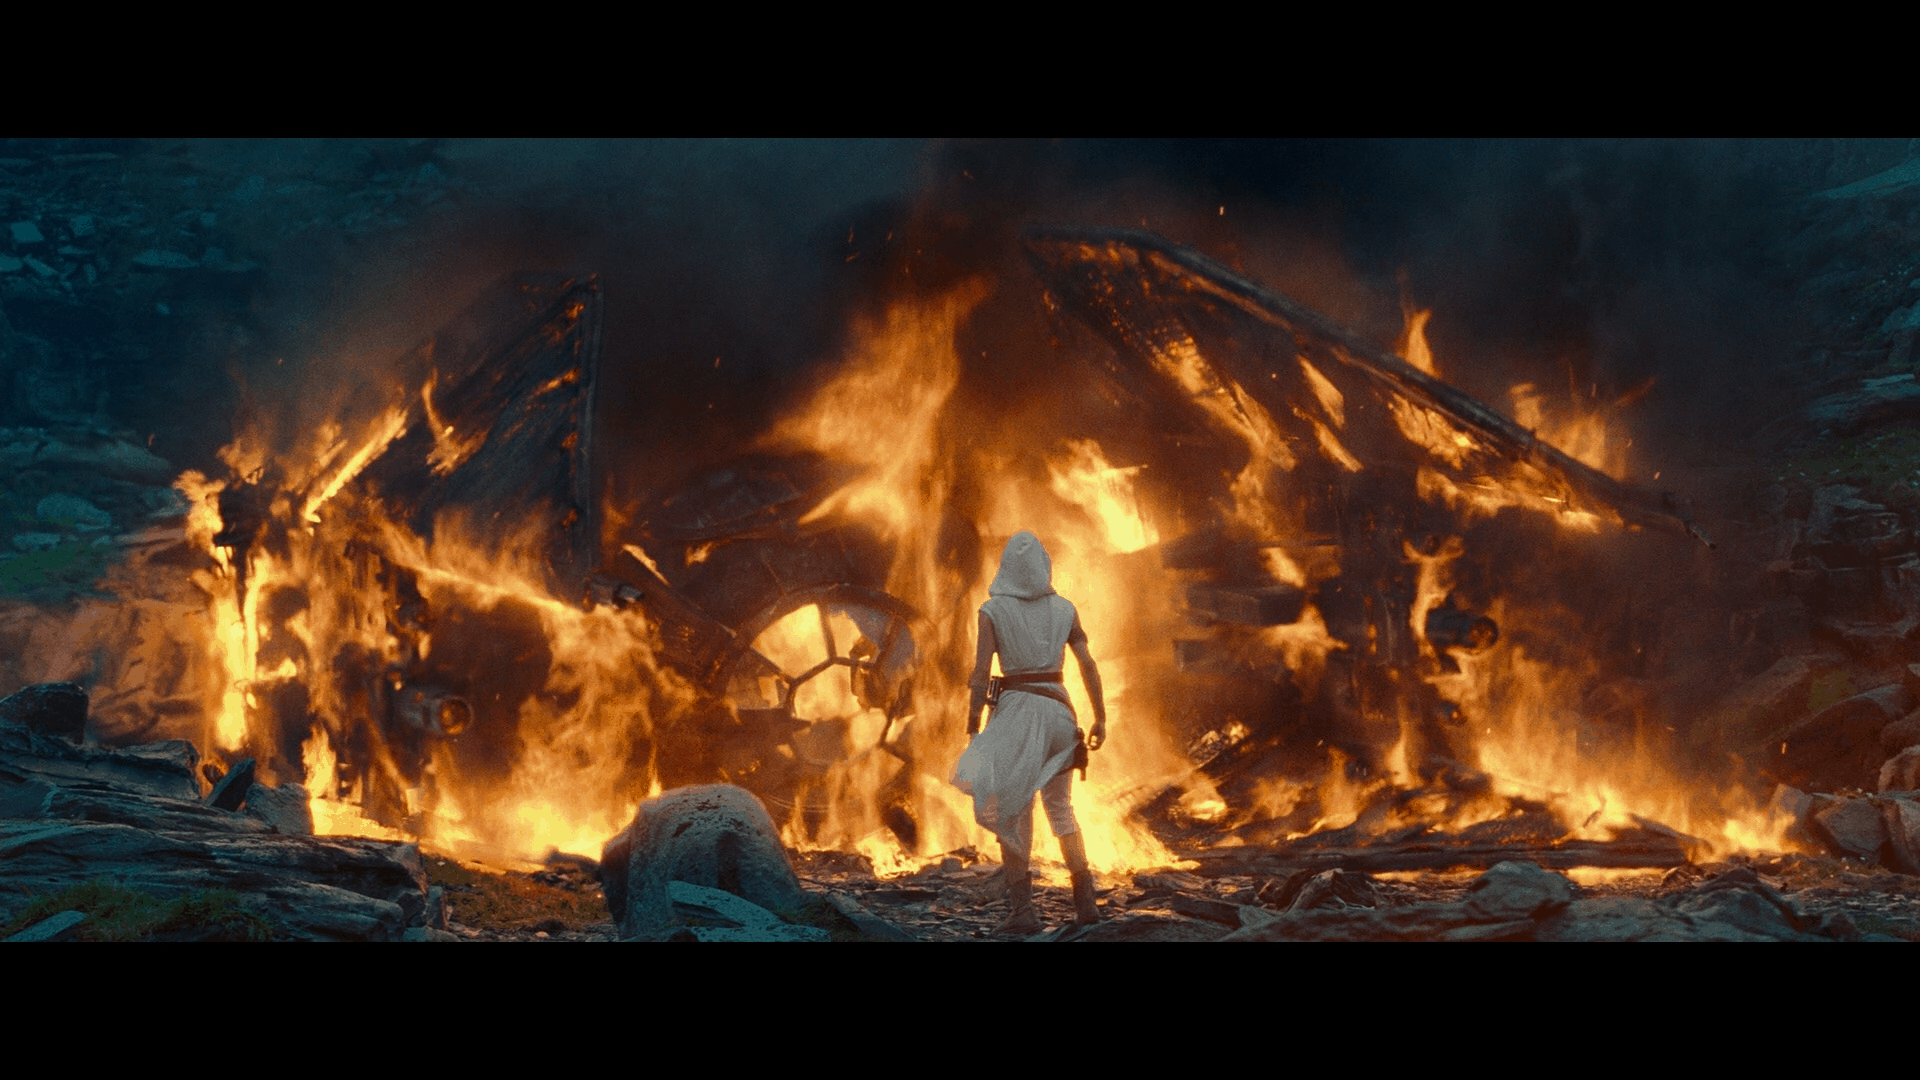 Star Wars: The Rise of Skywalker [Expectations Managed] 11